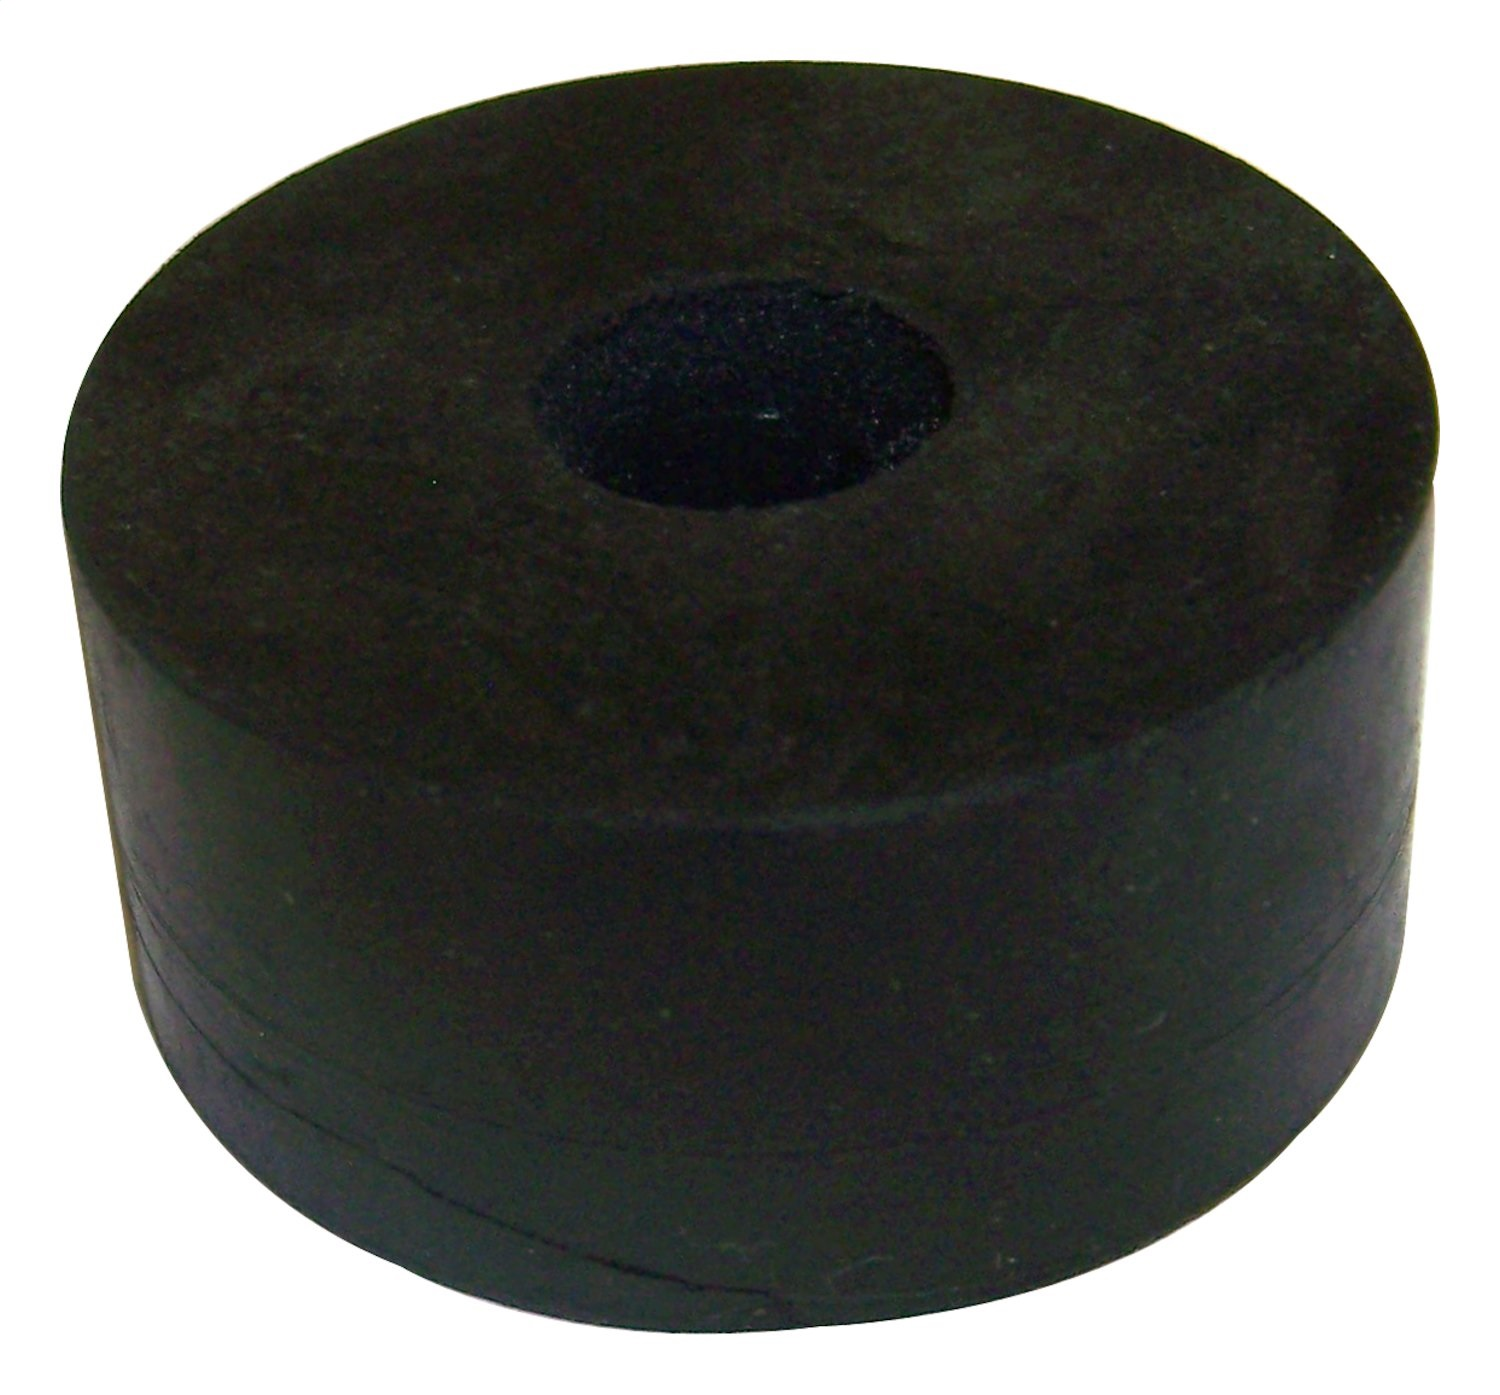 Crown Automotive J0953453 CASJ0953453 62-73 SJ/J-SERIES/48-63 SEDAN DELIVERY/46-64 STATION WAGON BODY MOUNT BUSHING